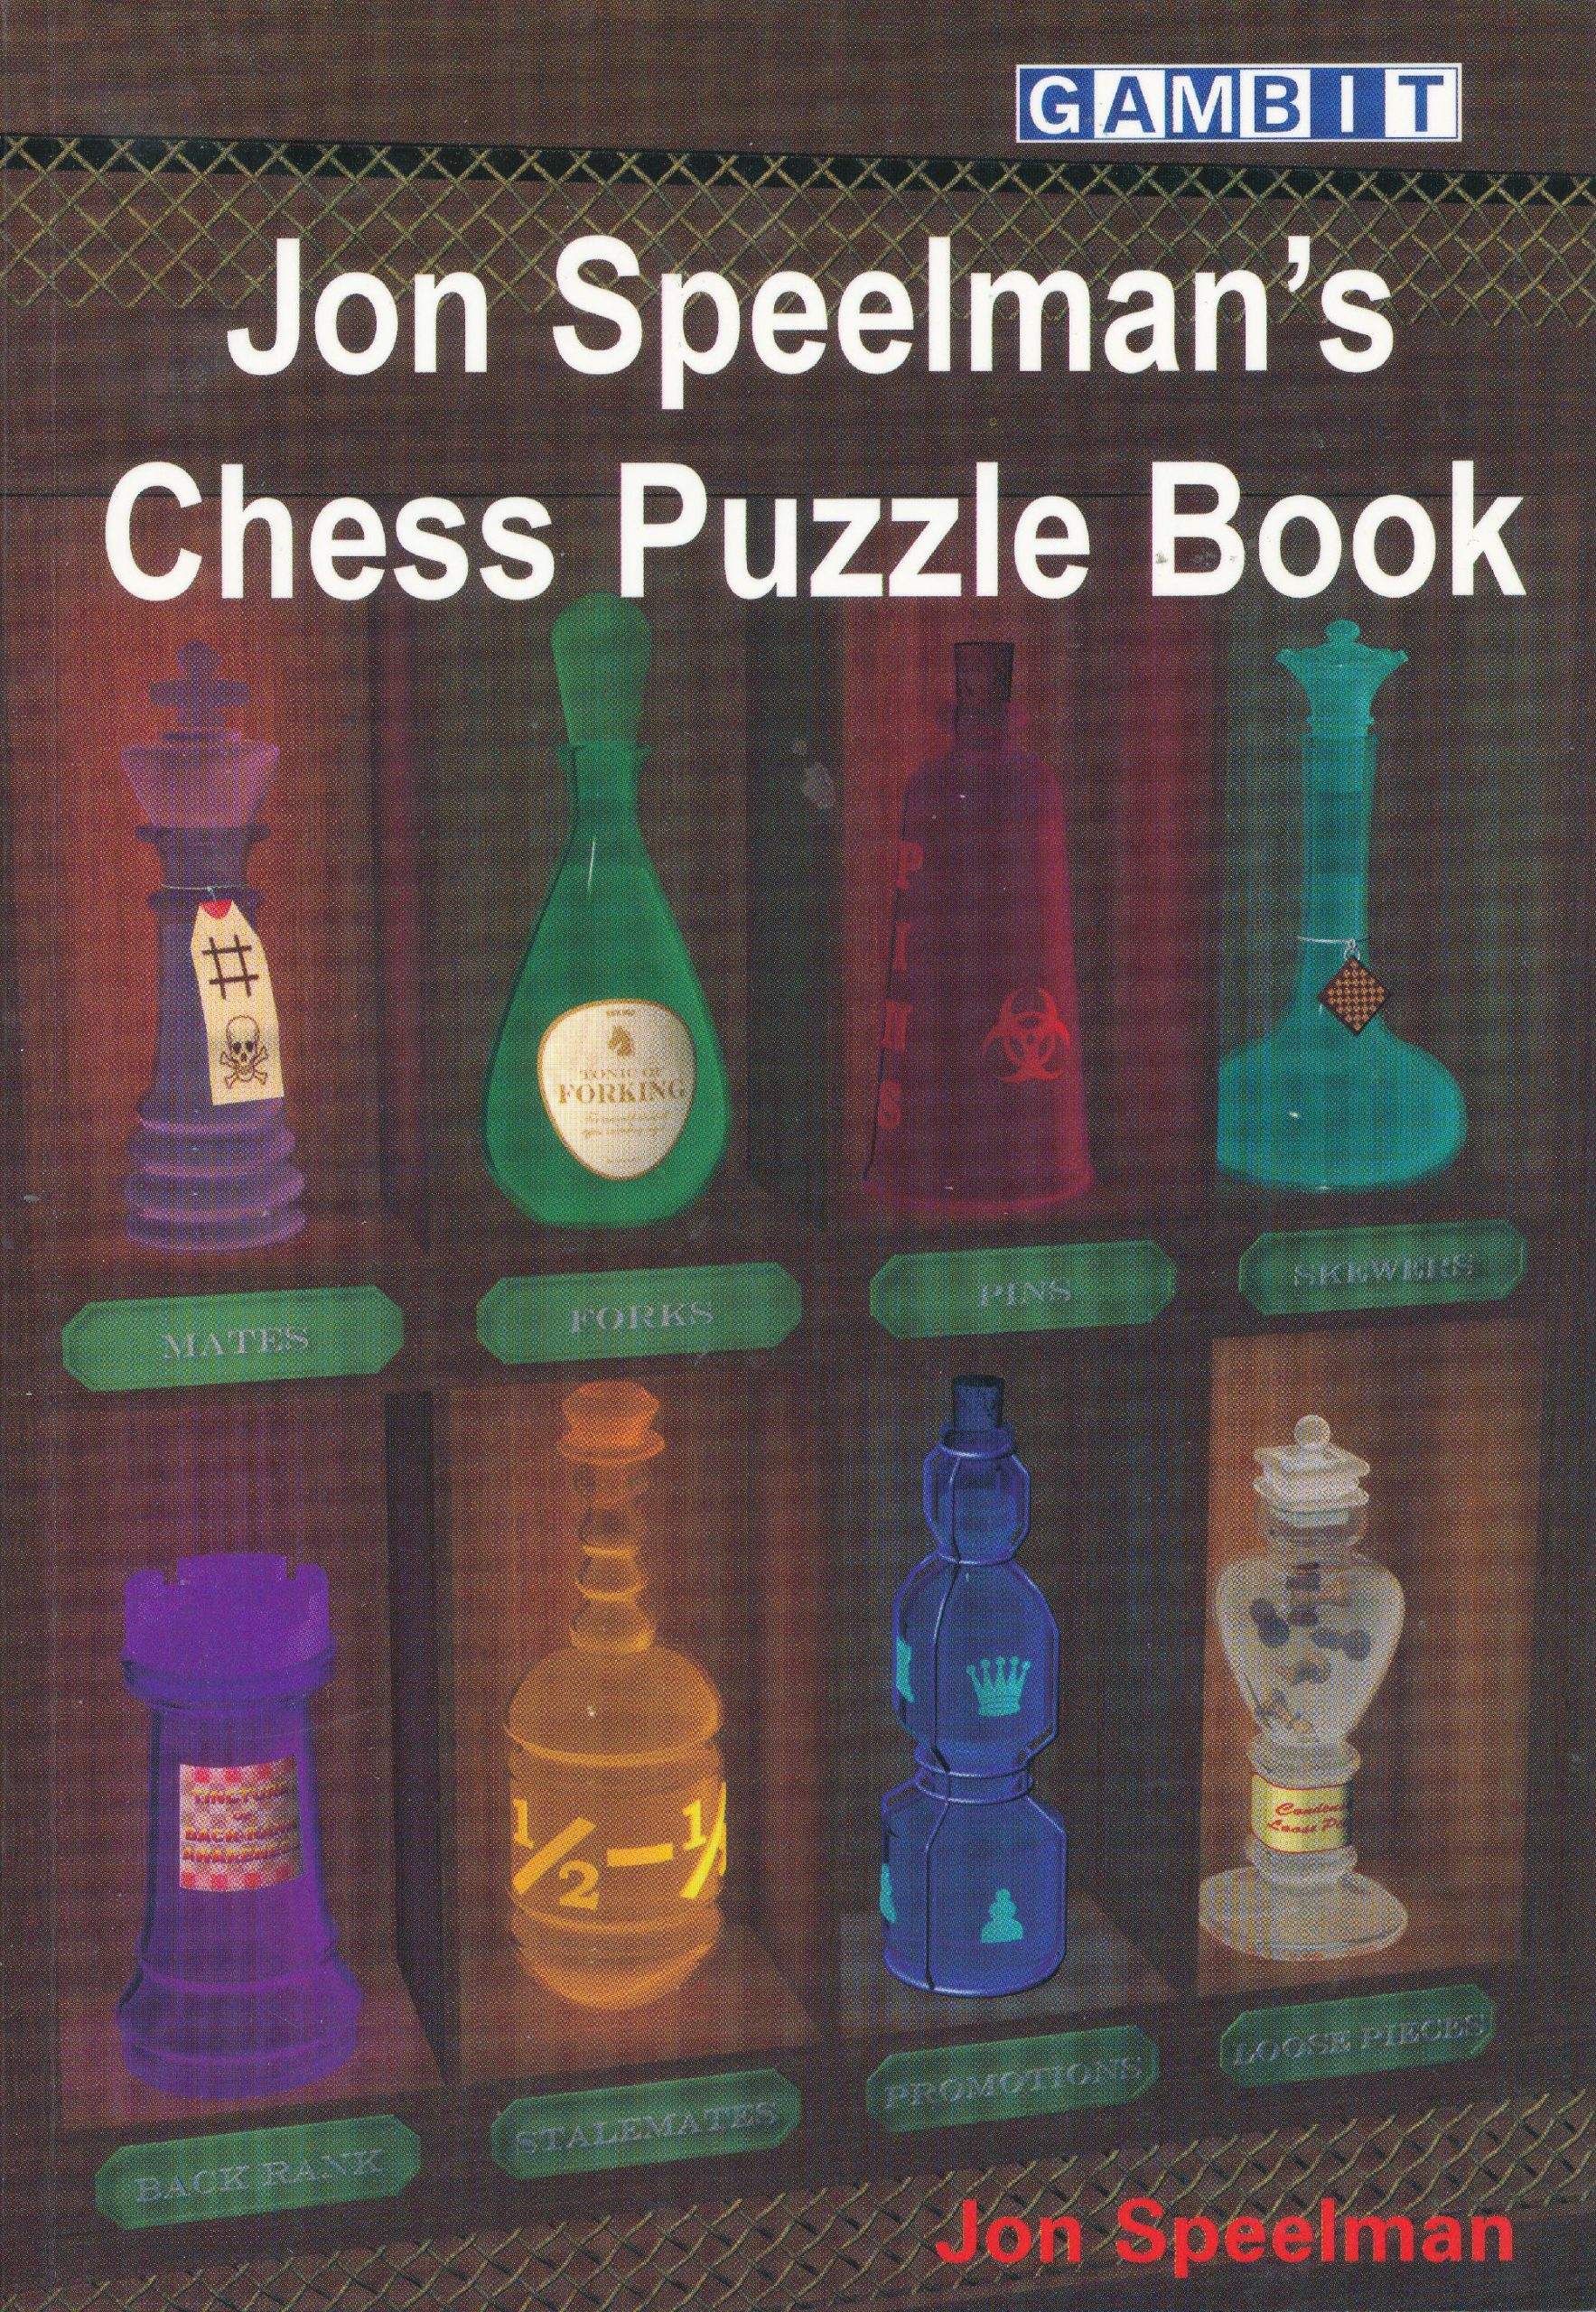 Speelman, Jon (2008). Jon Speelman's Chess Puzzle Book. Gambit Publications Ltd. 143 pages. ISBN 978-1-904600-96-1.